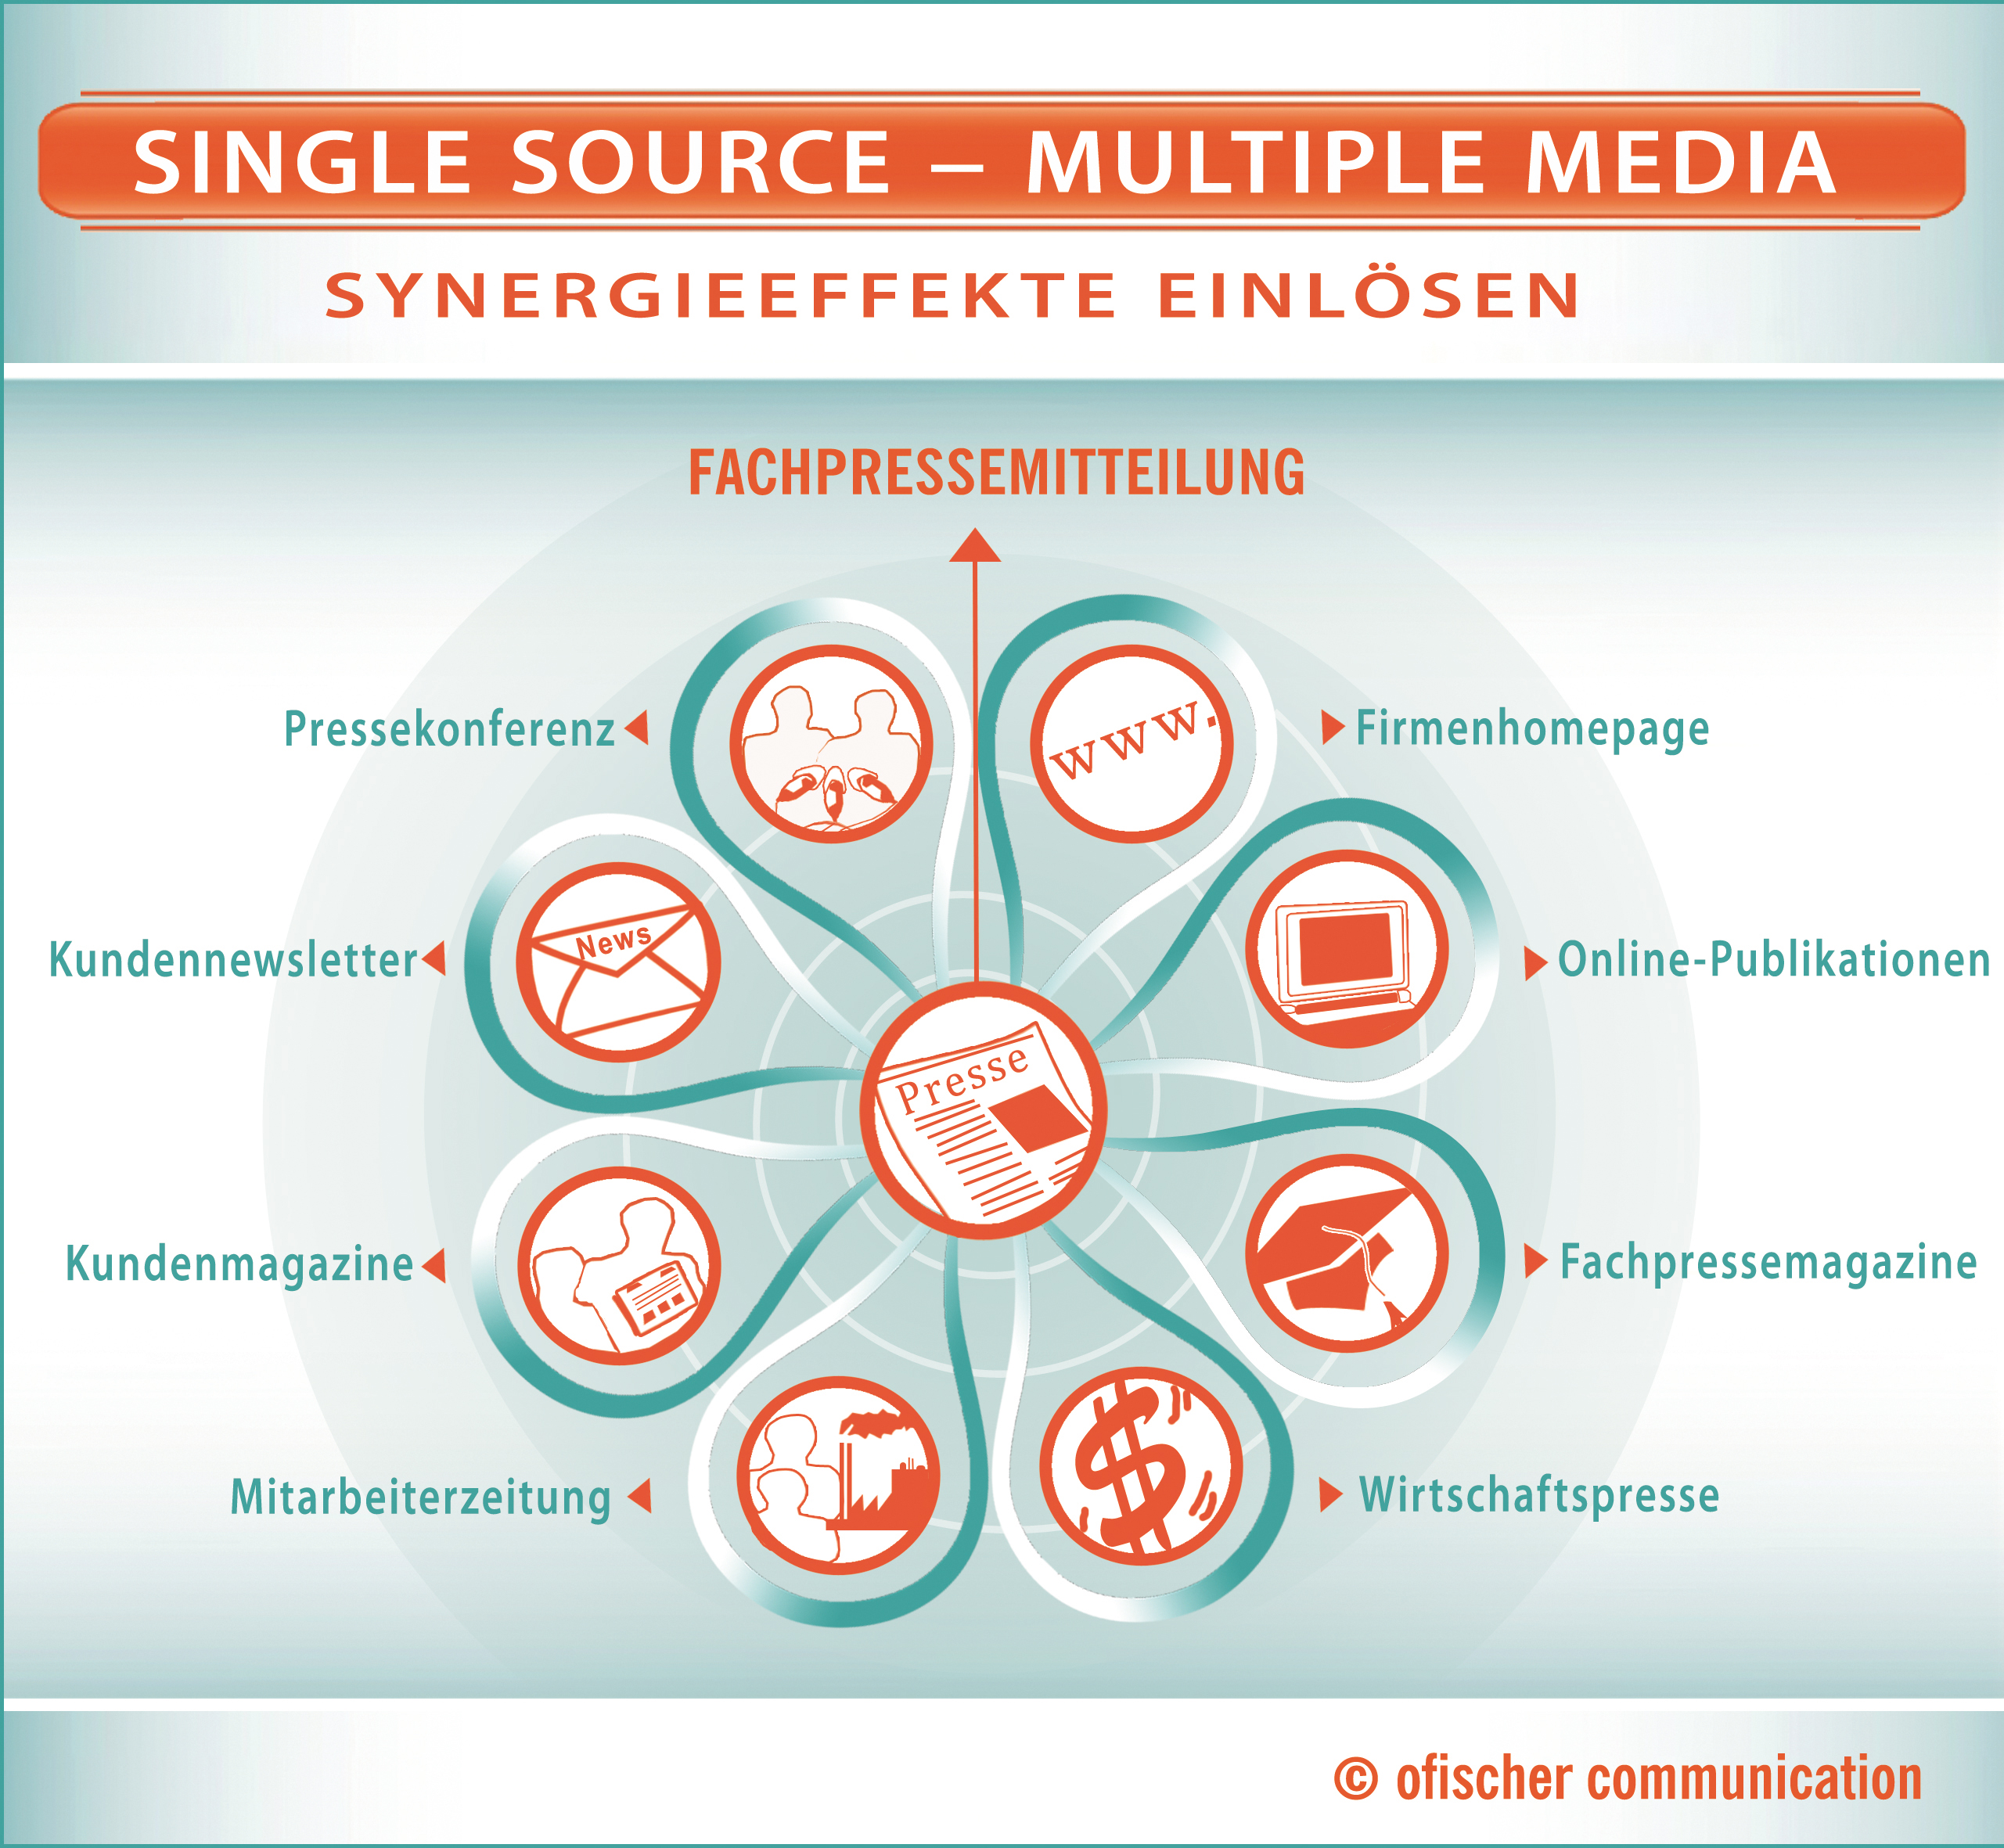 Single Source - Multiple Media - Synergieeffekte einlösen